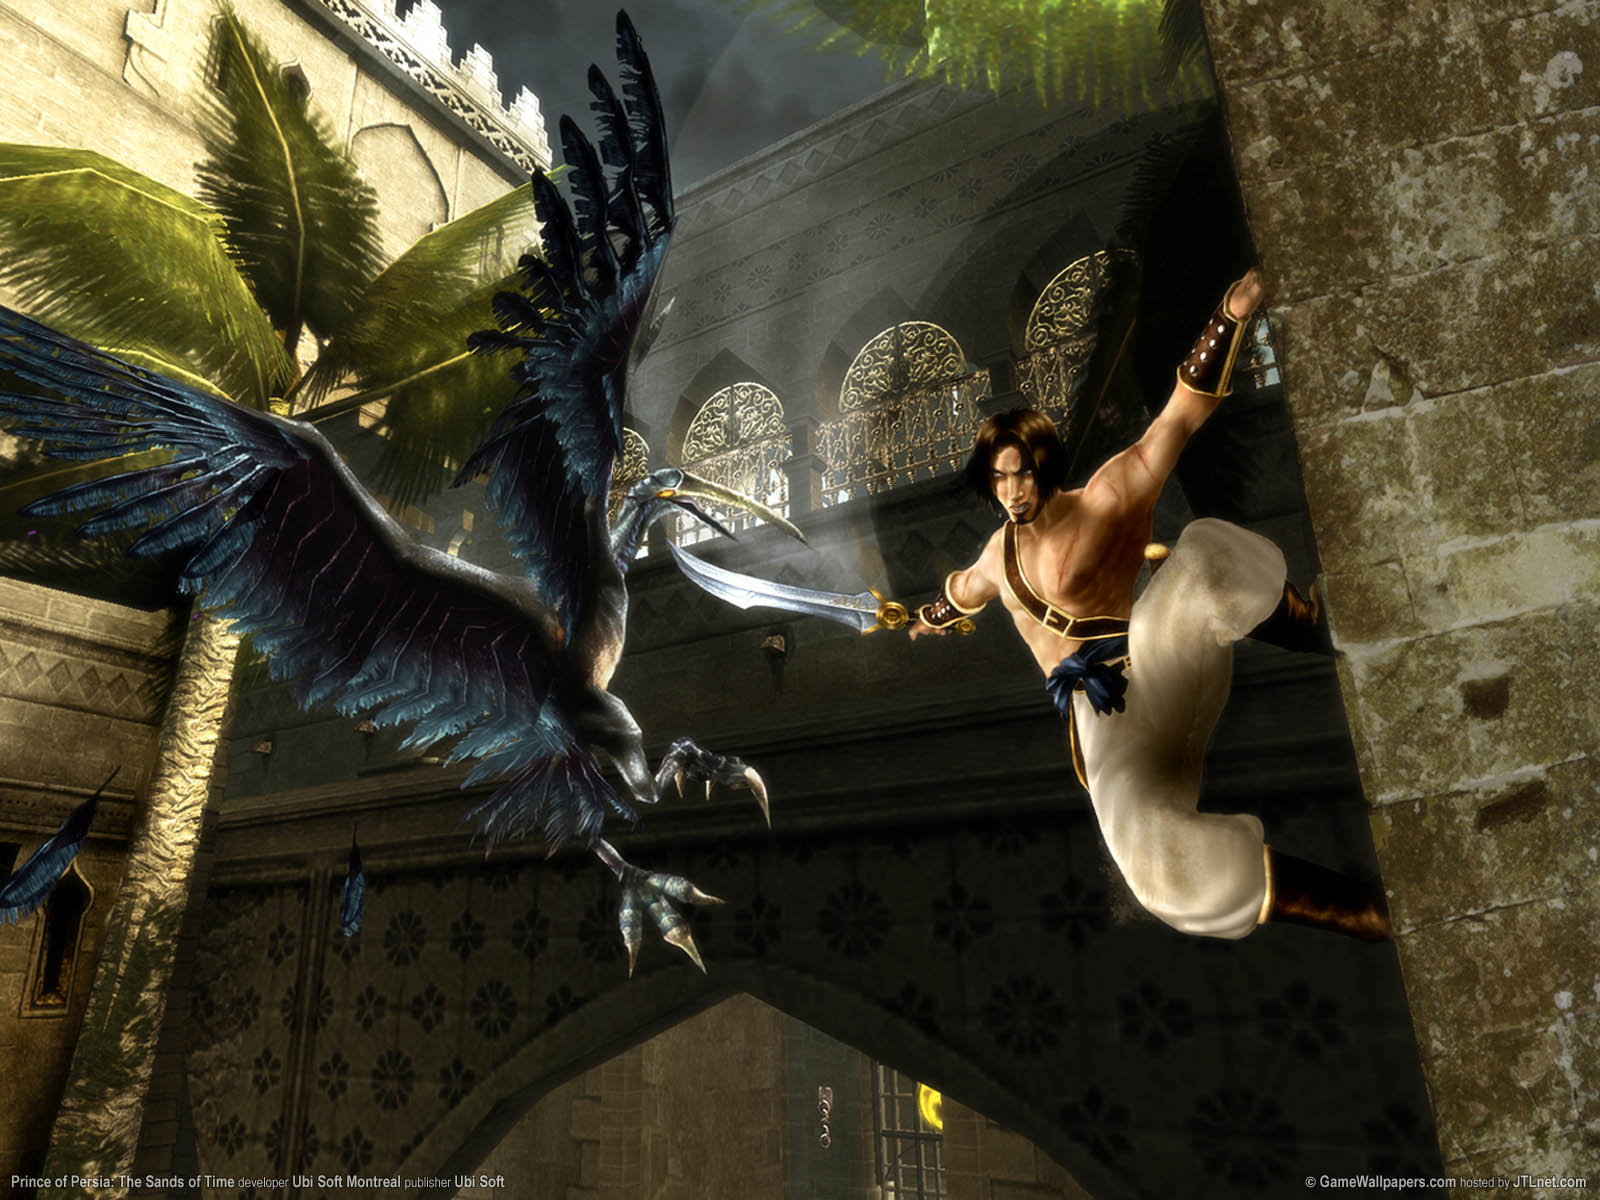 Prince of persia the sands of time dvd avi download pc